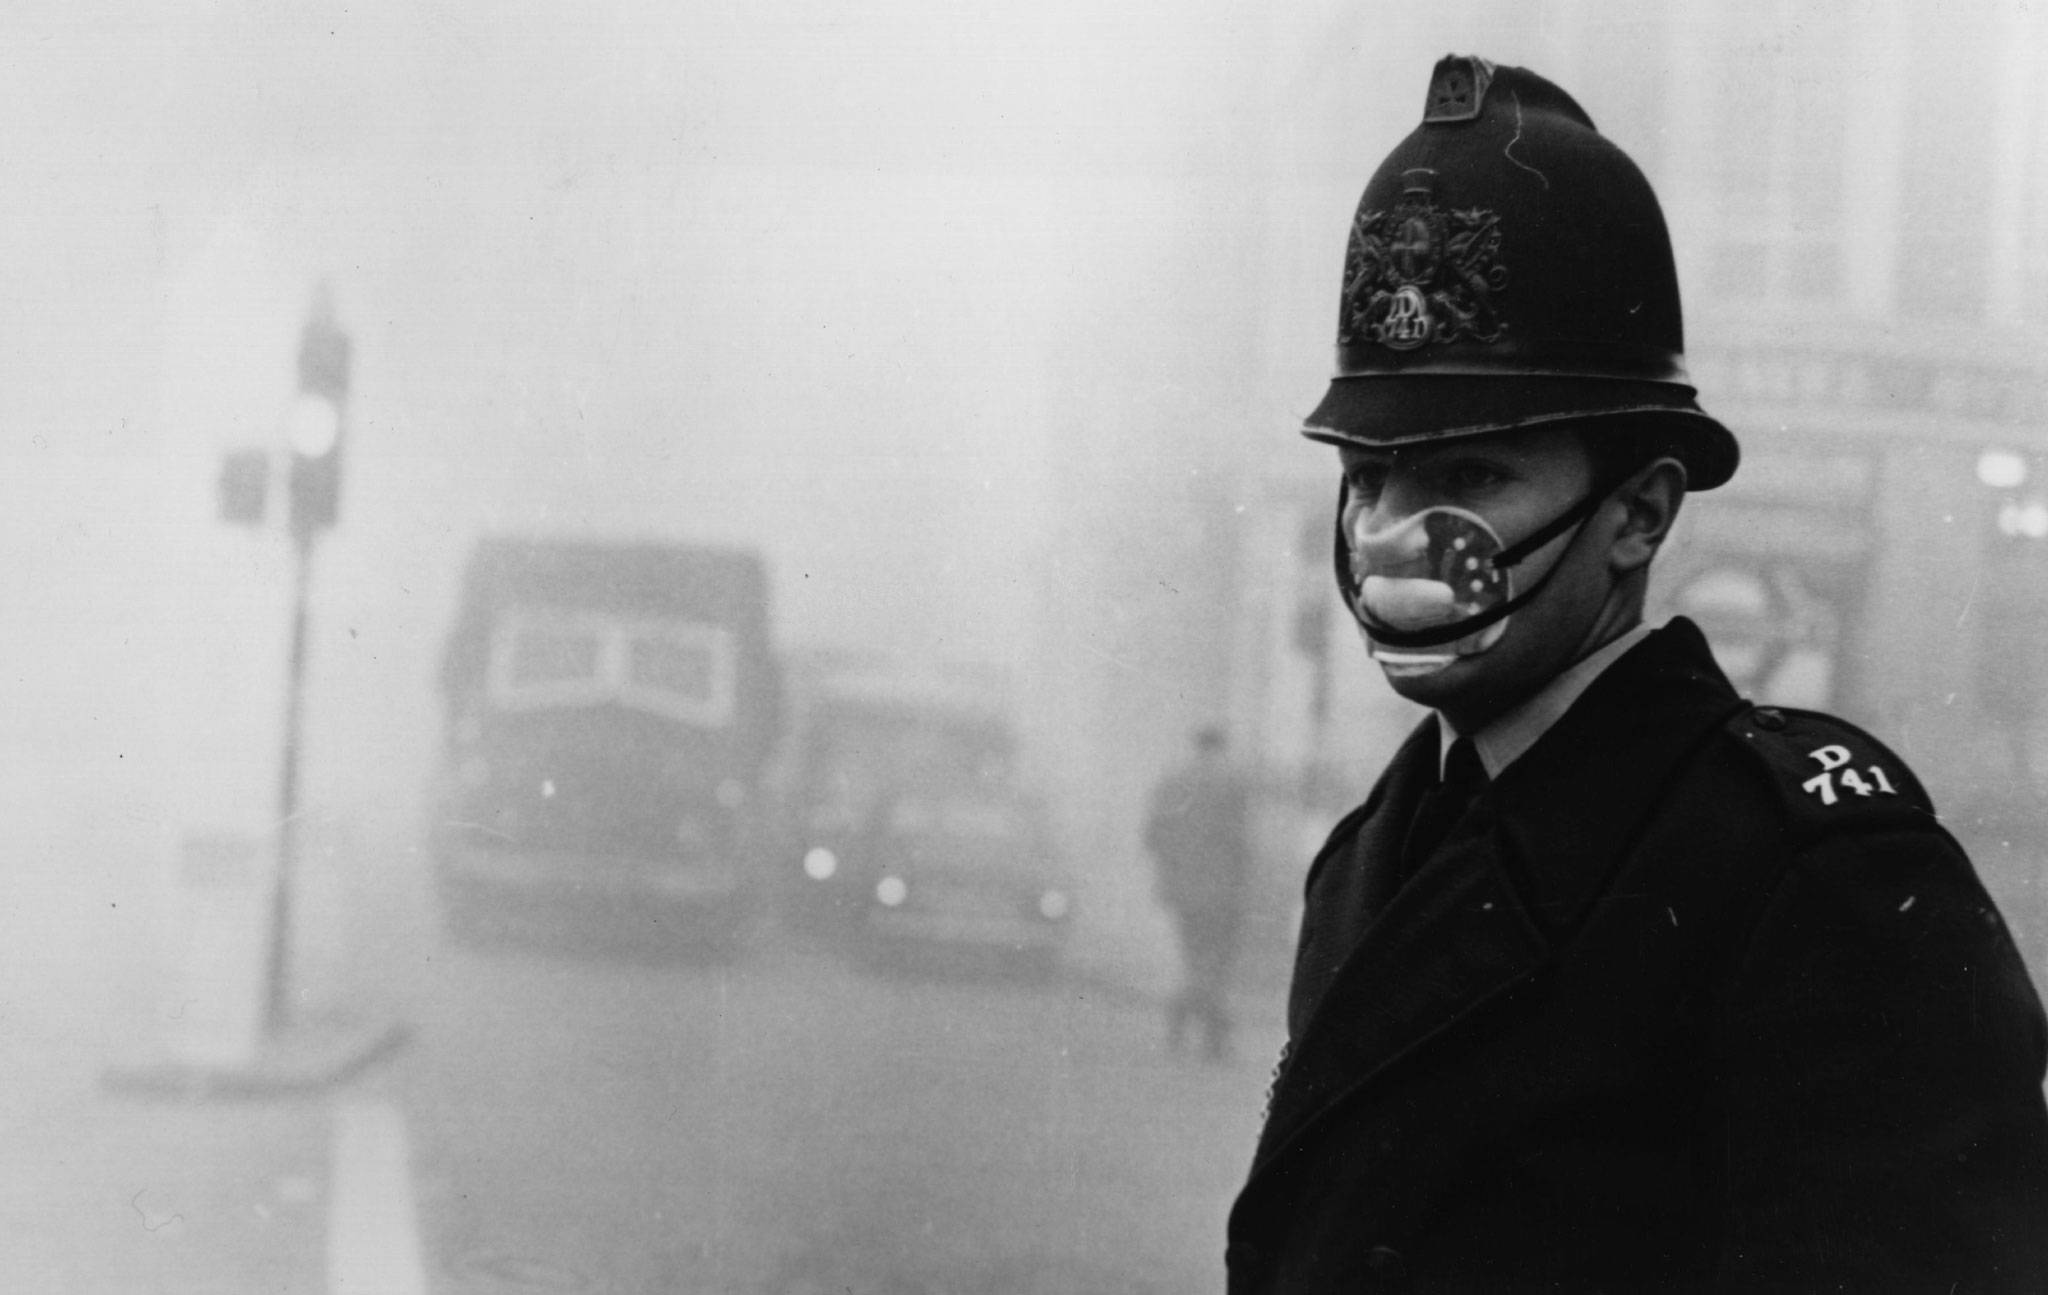 The Great Smog of 1952 engulfed London for days and is believed to have killed 12,000 people.